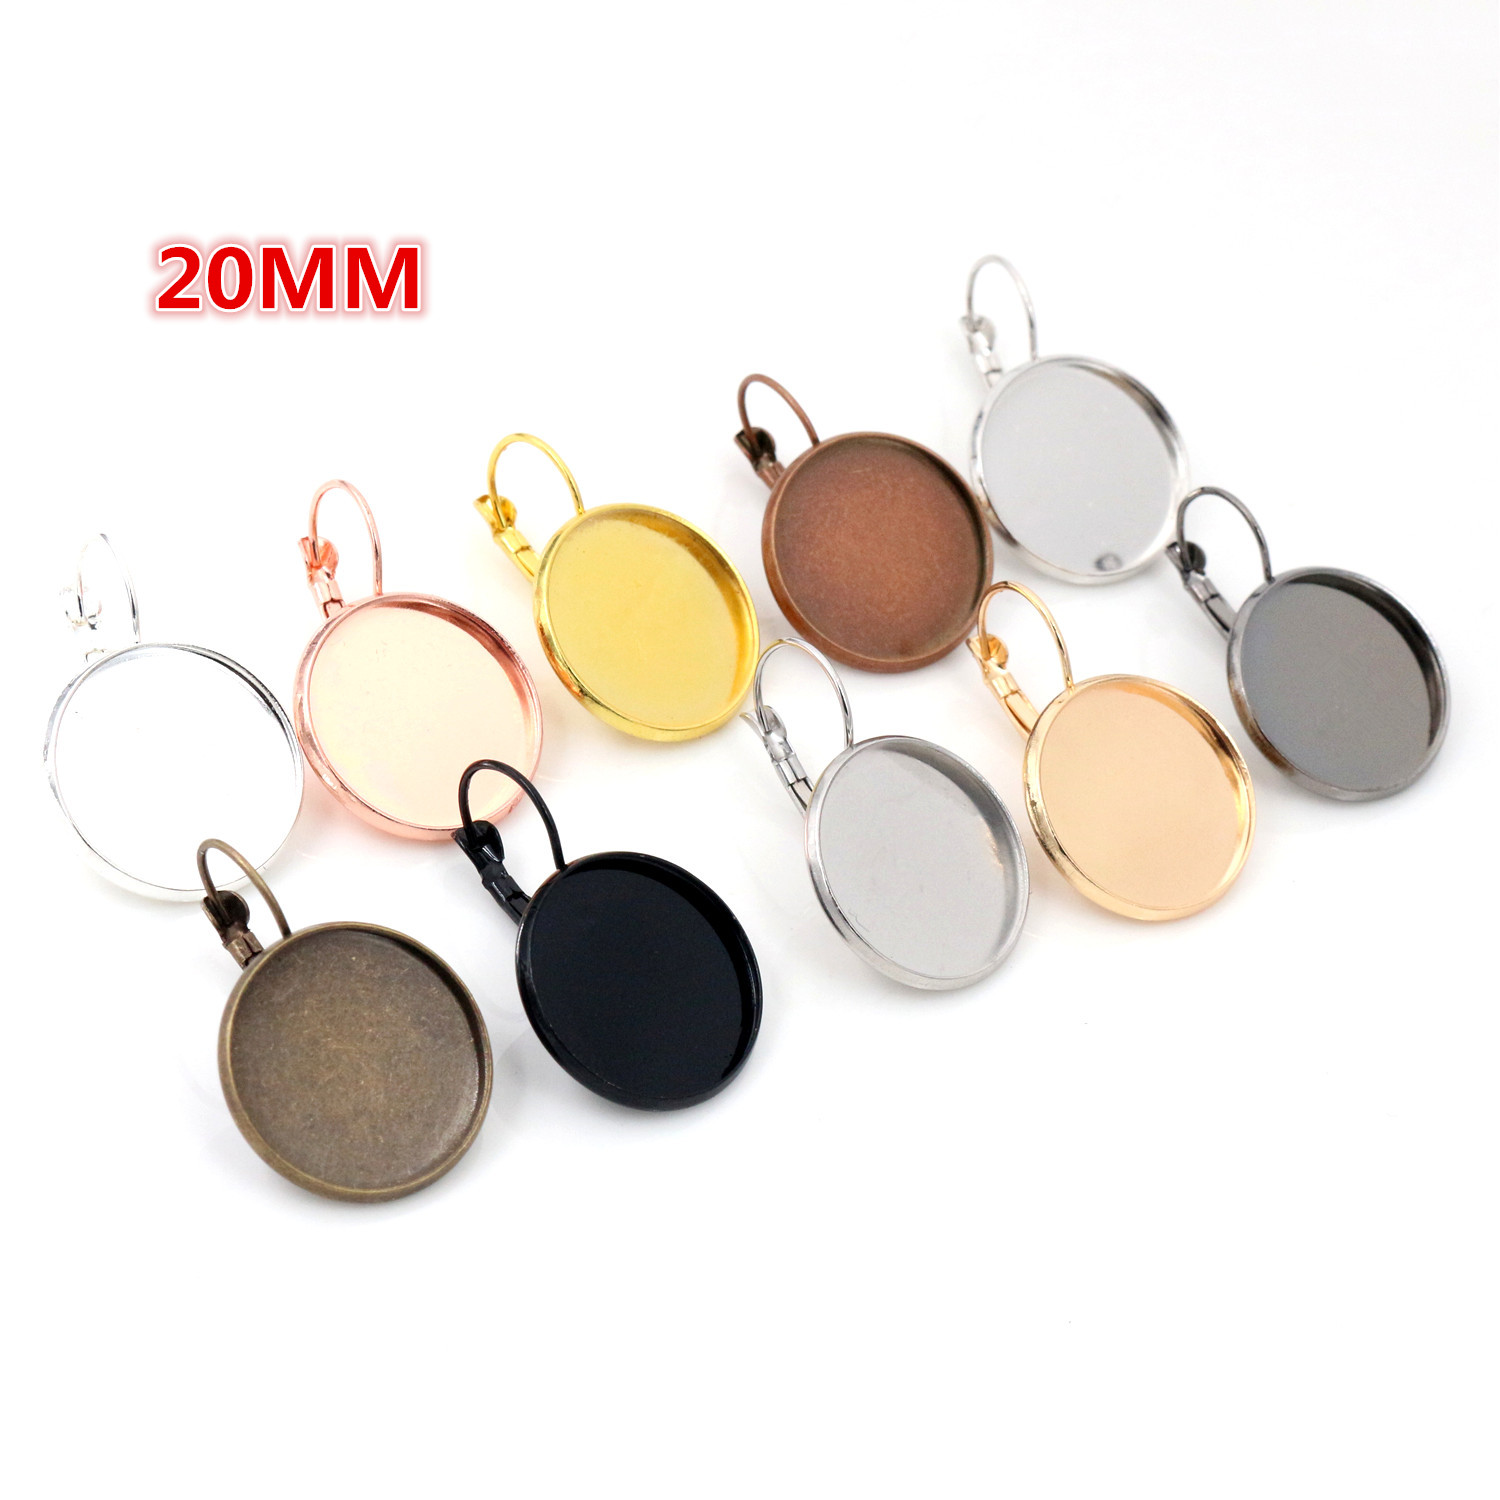 20mm 10pcs/Lot Classic 10 Colors Plated French Lever Back Earrings Blank/Base,fit 20mm Glass Cabochons,buttons;earring Bezels